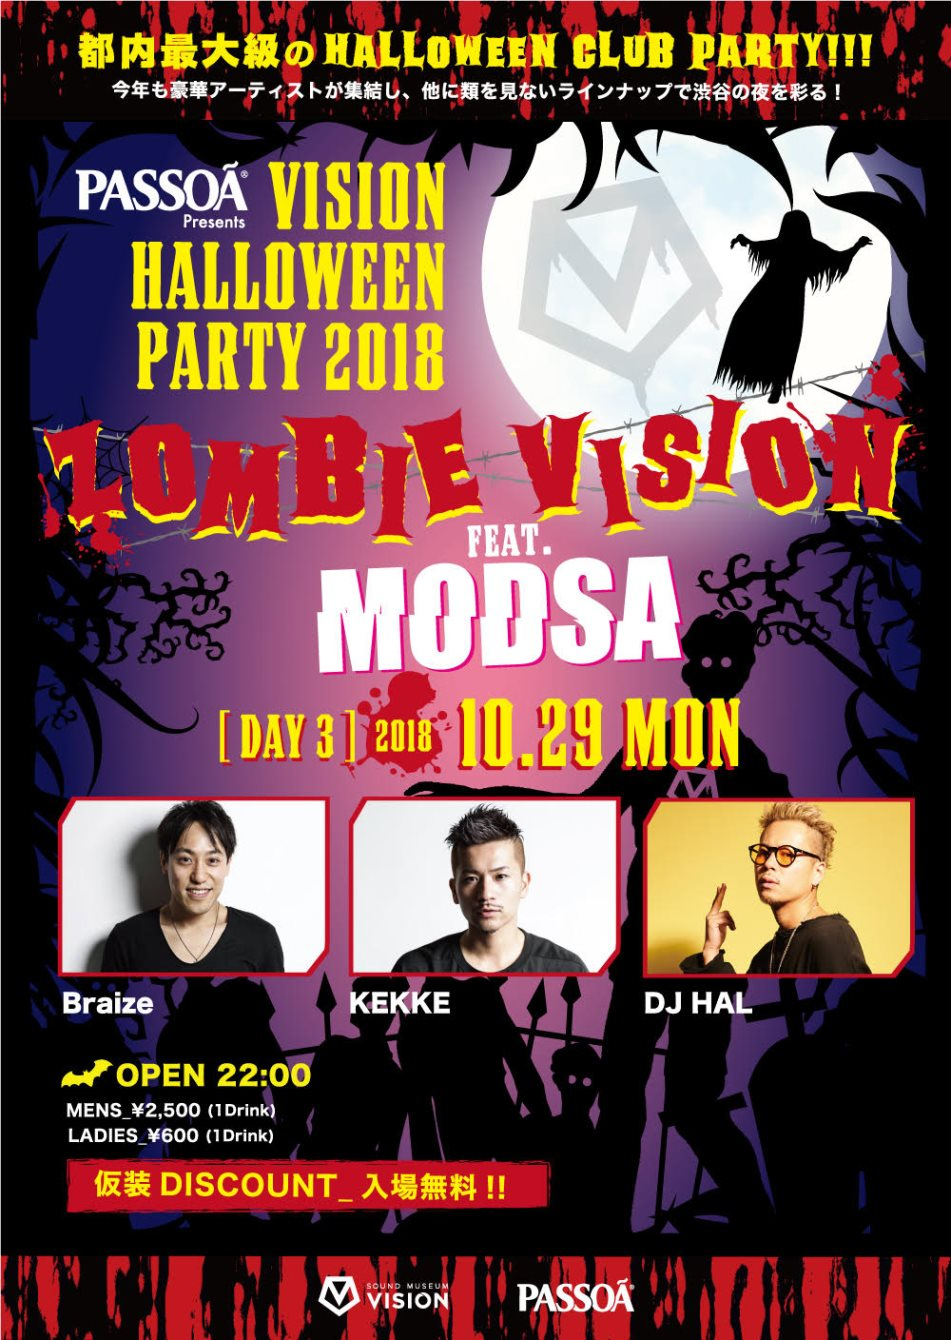 ra passoa presents vision halloween party 2018 zombie vision day3